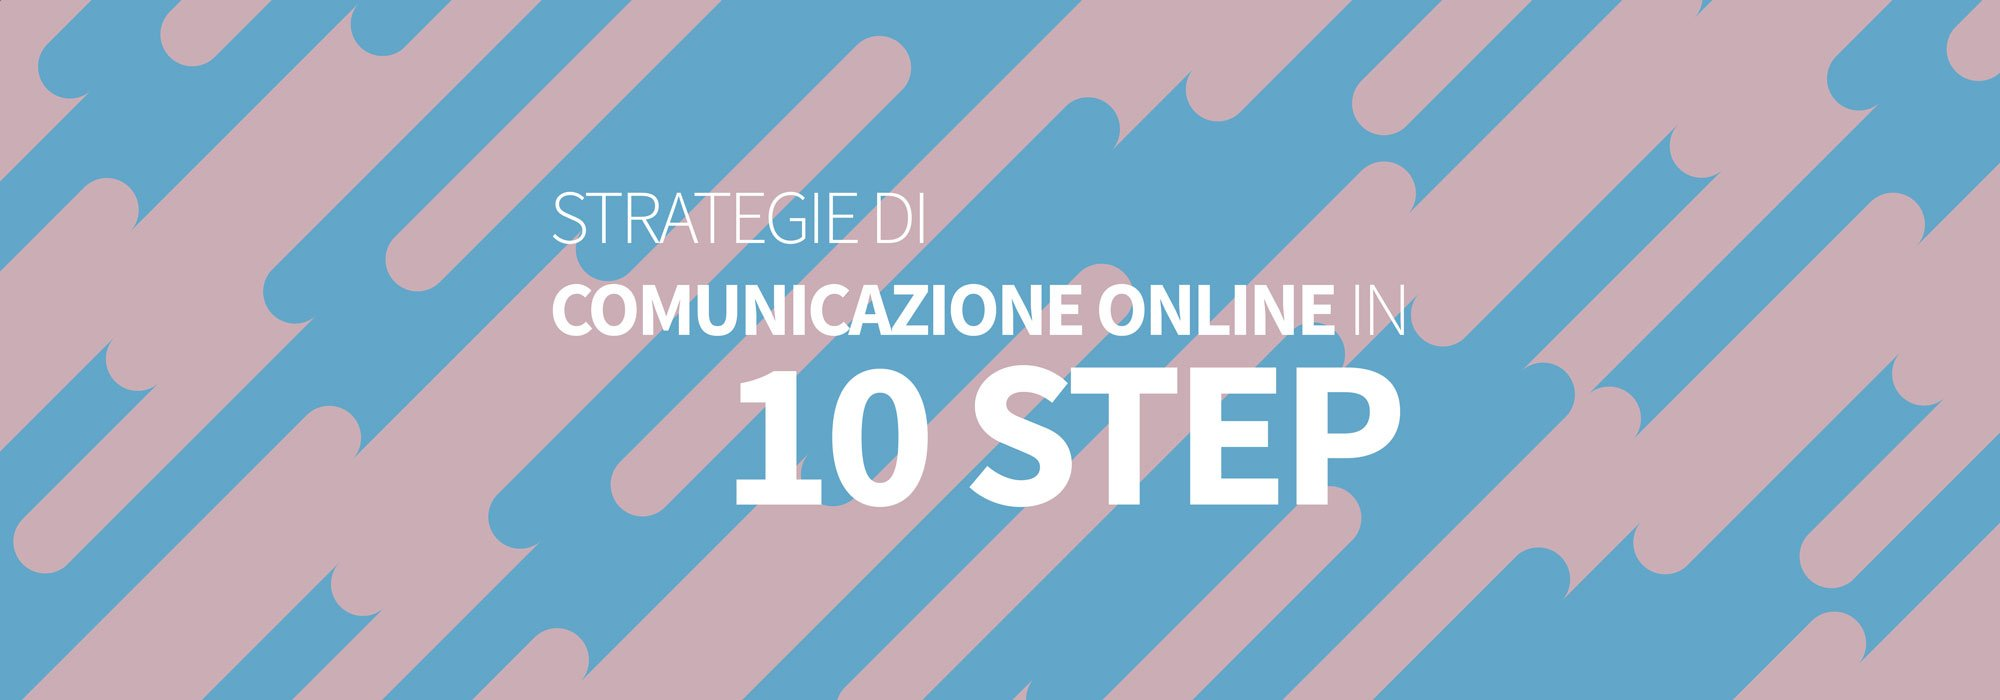 Strategie di comunicazione online in 10 step